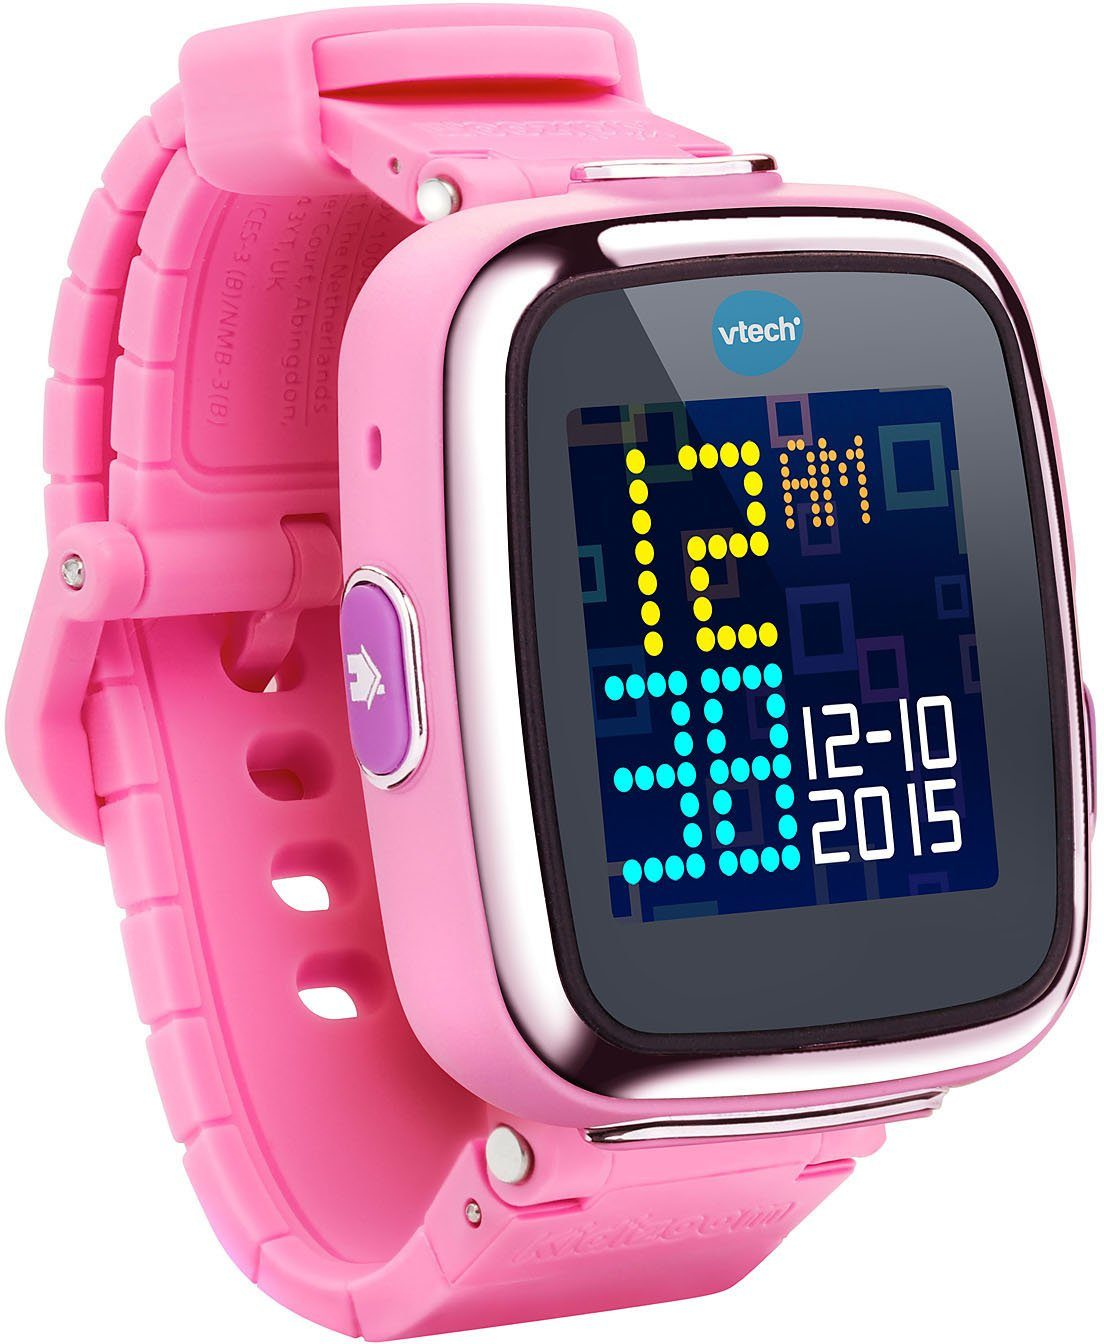 VTech Uhr mit Kamerafunktion, »Kidizoom Smart Watch 2 Pink«